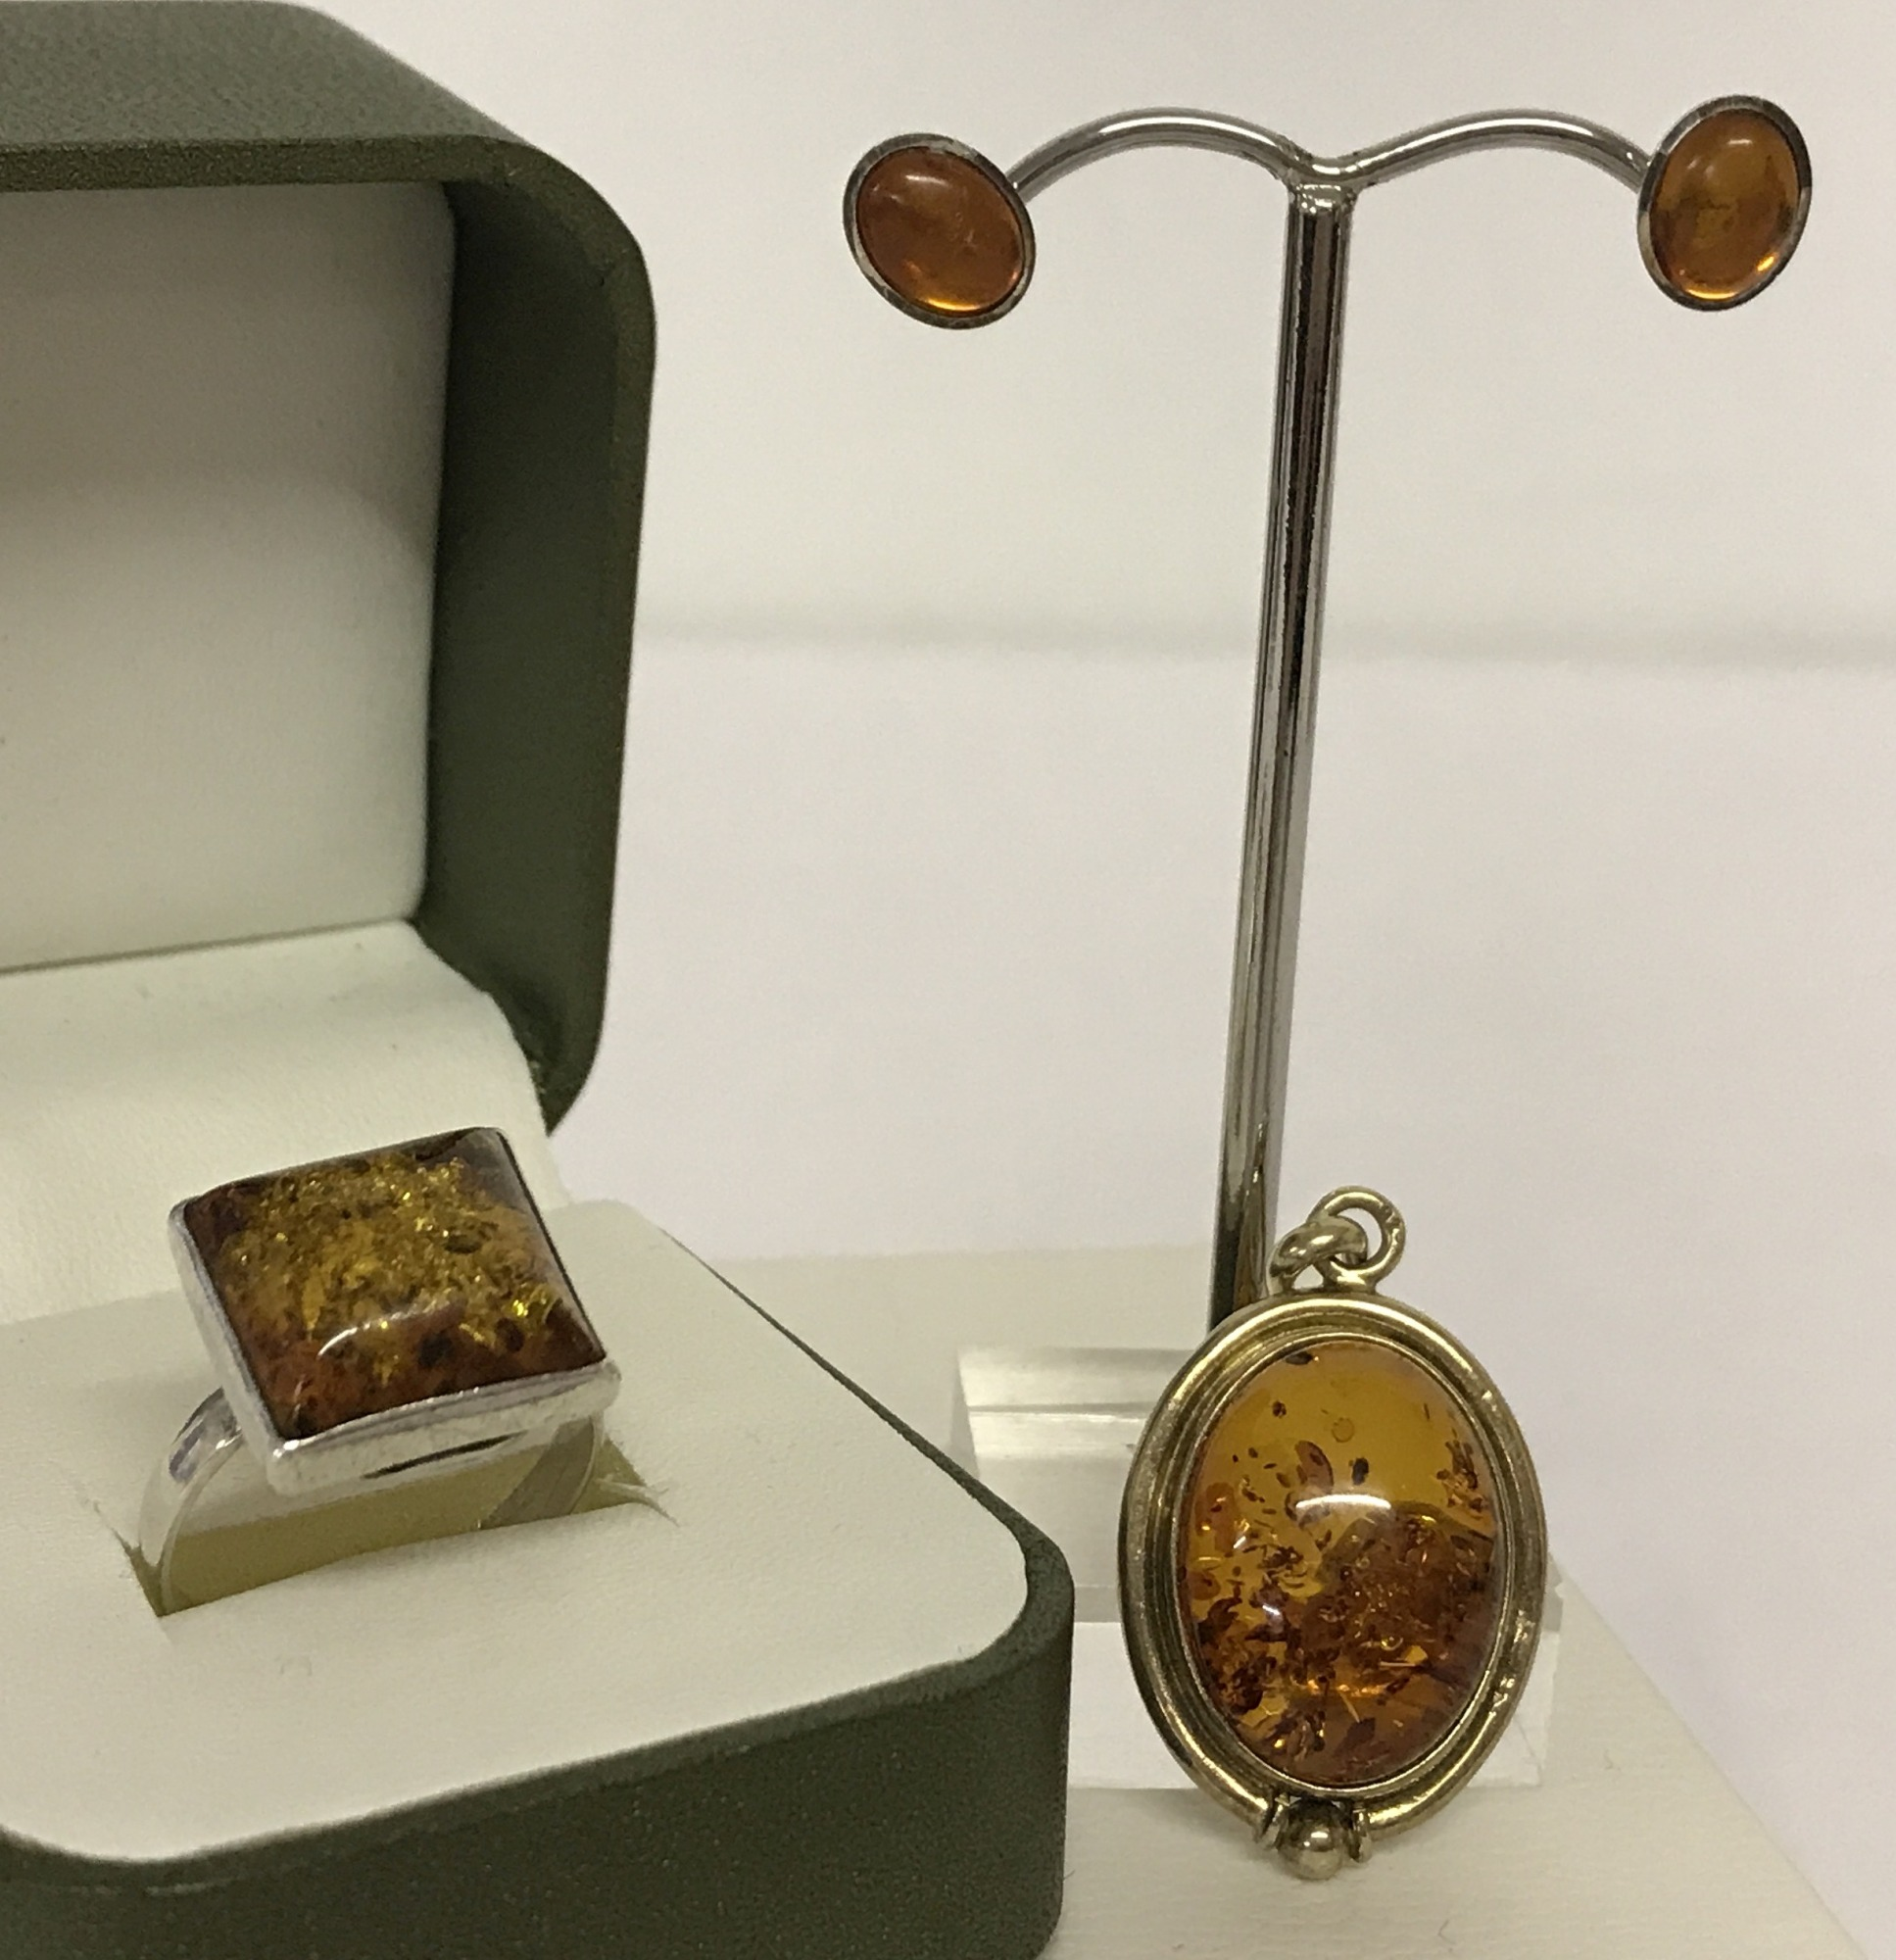 Lot 2 - 3 pieces of amber jewellery. A silver gilt oval amber pendant.